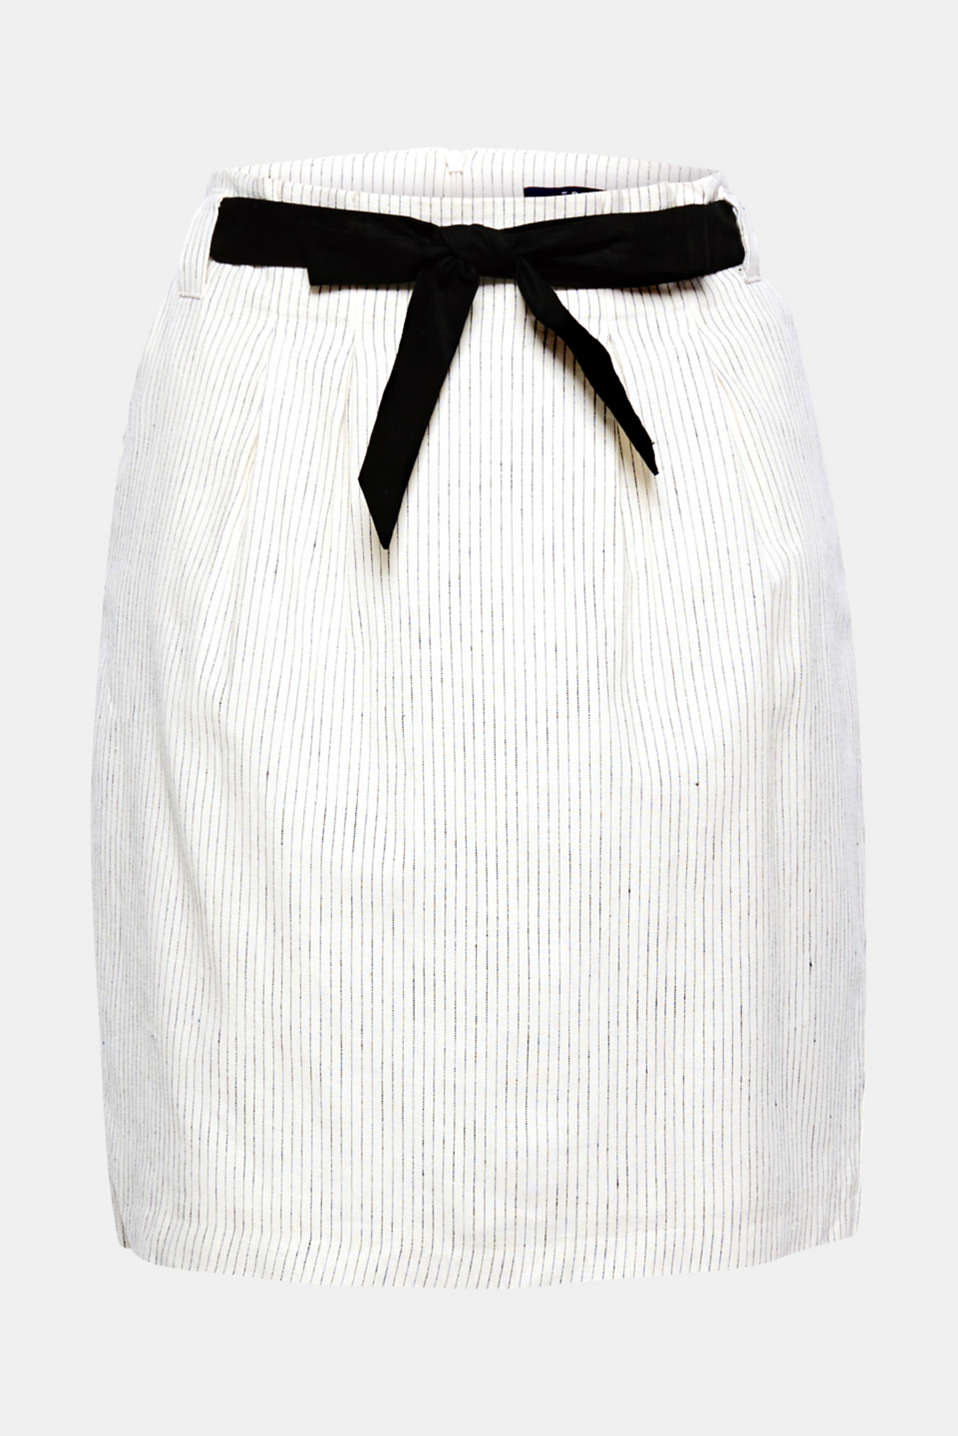 You will love this perfect summer skirt with its cool linen mix, fine stripes and fashionable paperbag waistband with a plain tie-around belt!